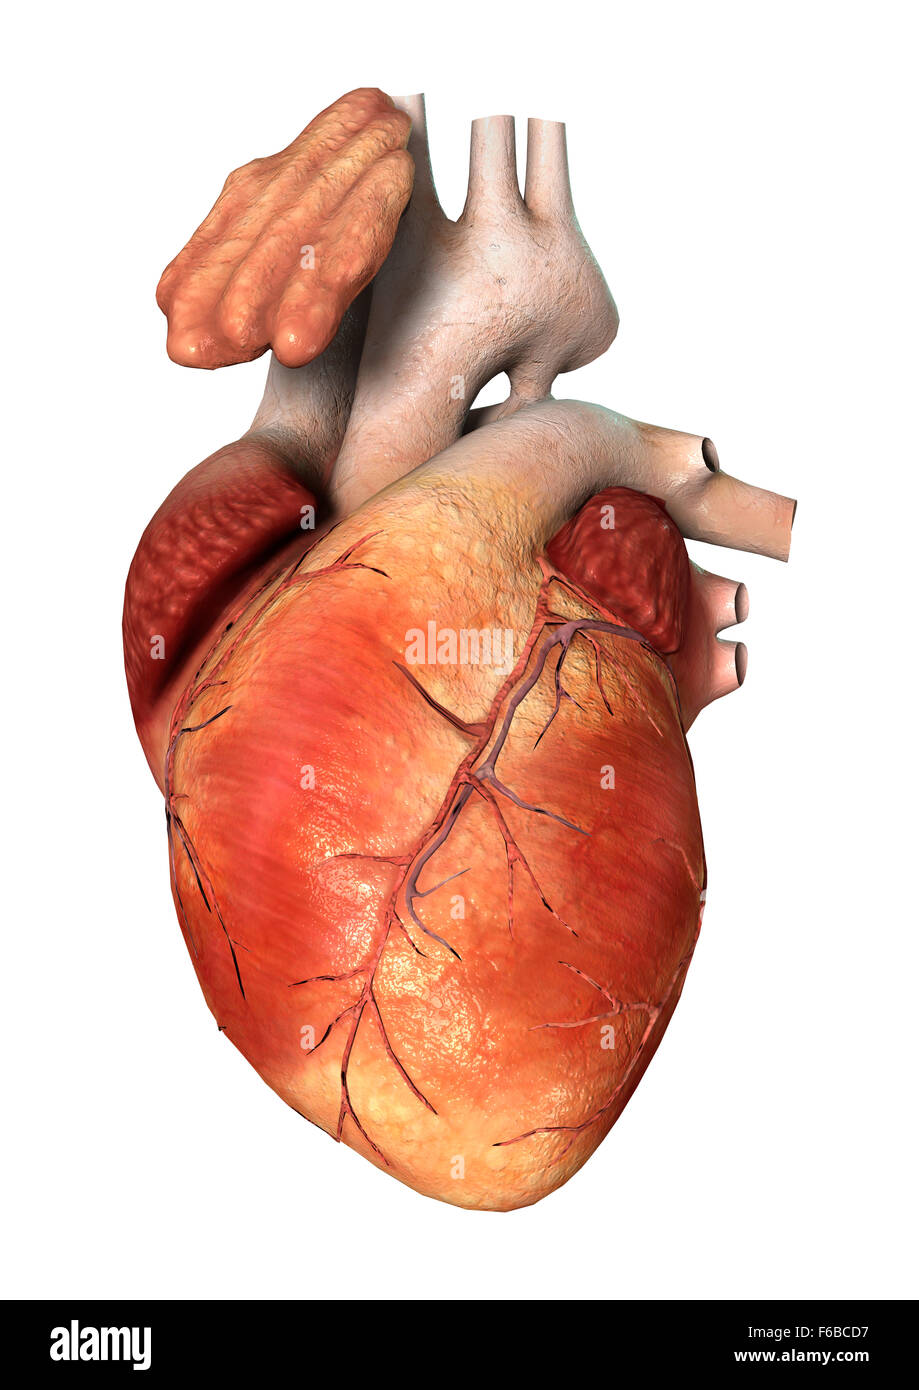 3d Digital Render Of A Human Heart Isolated On White Background